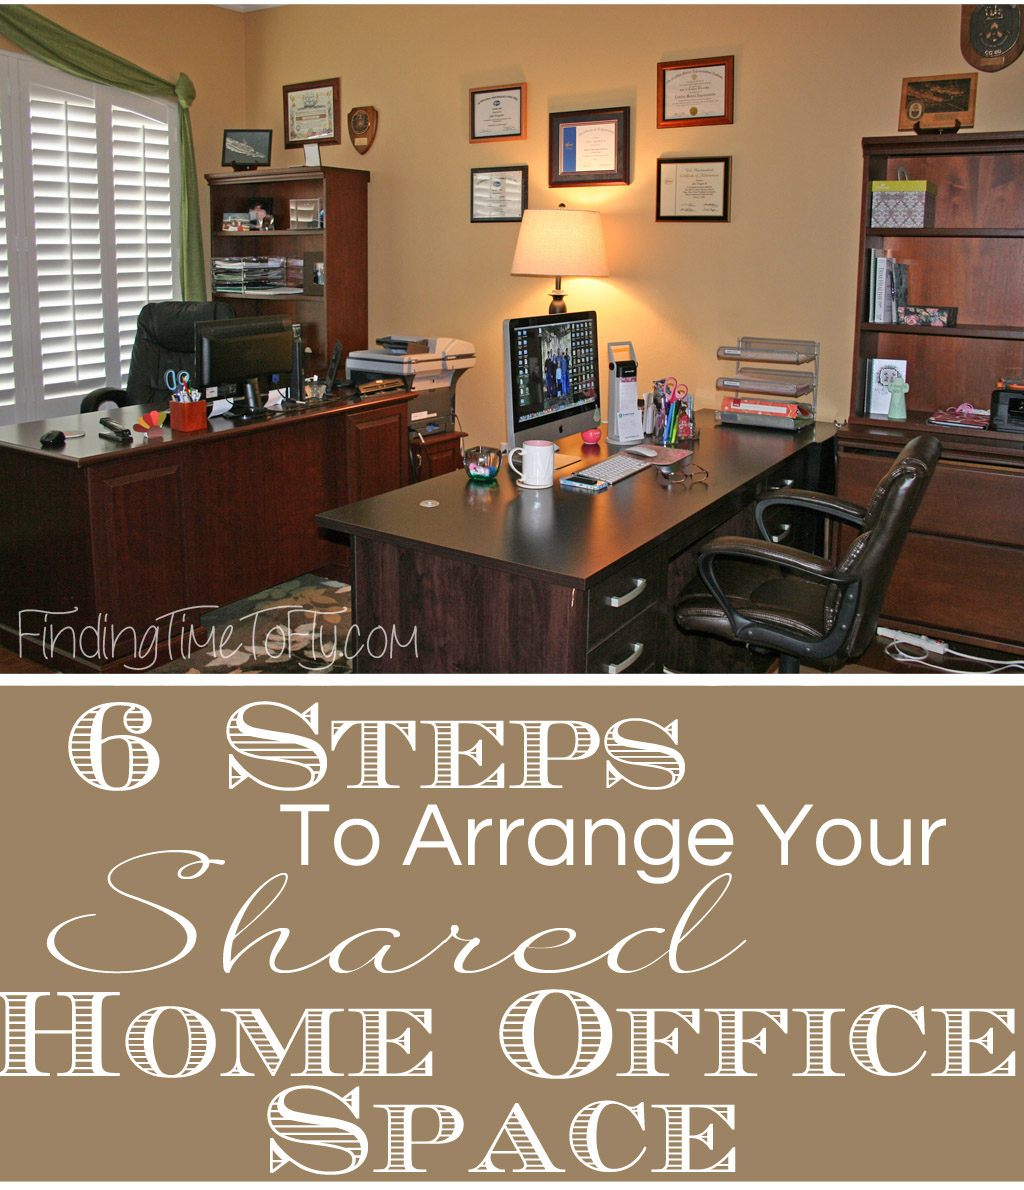 Follow these 6 simple steps and learn how to turn your shared home office space into an office you both love.